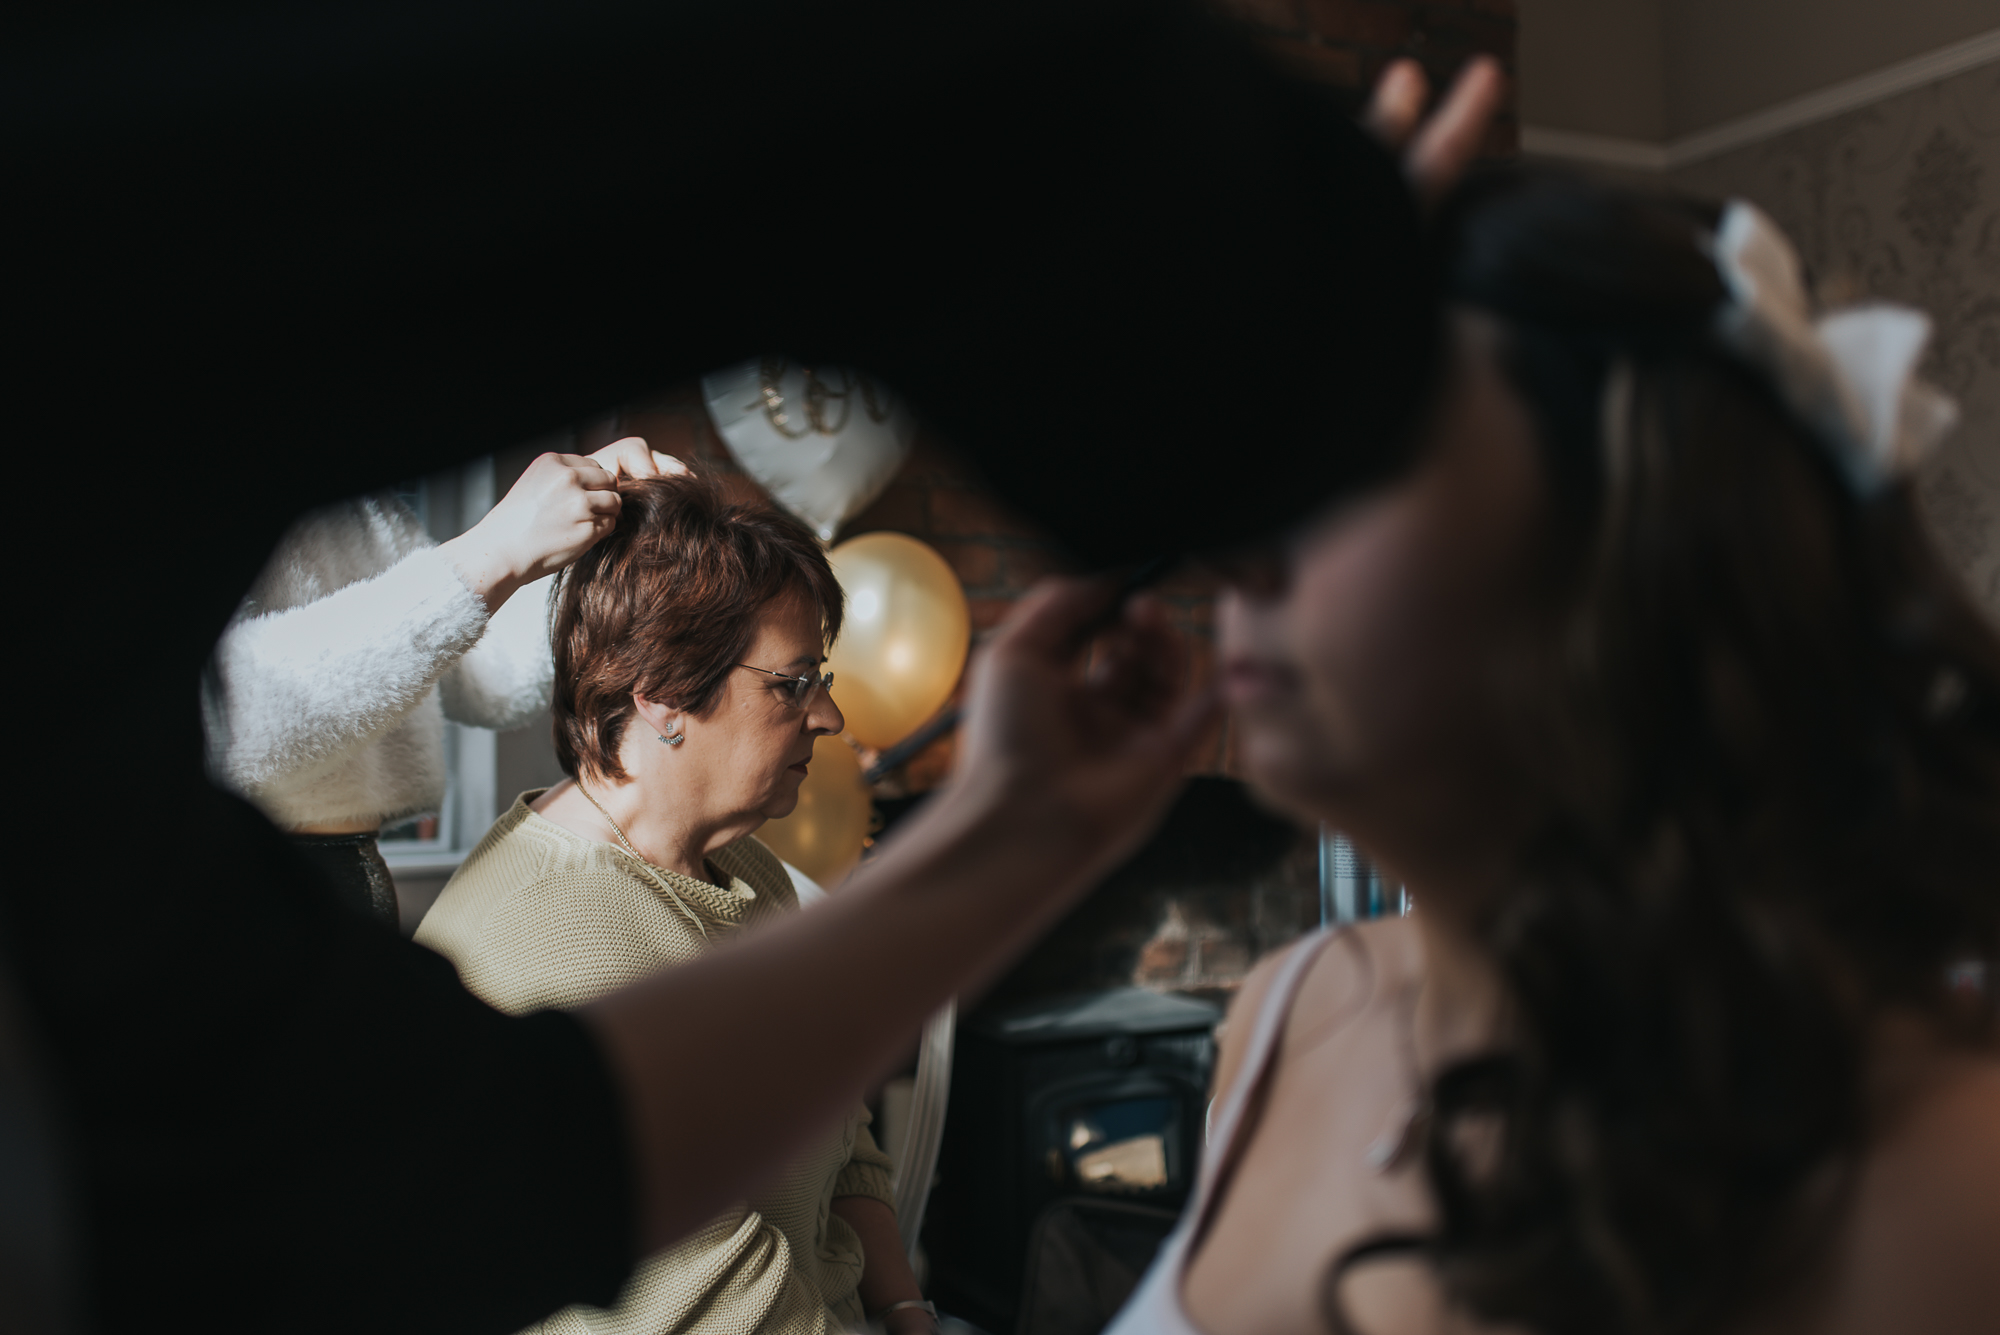 mother of the bride getting her make up done before the wedding ceremony